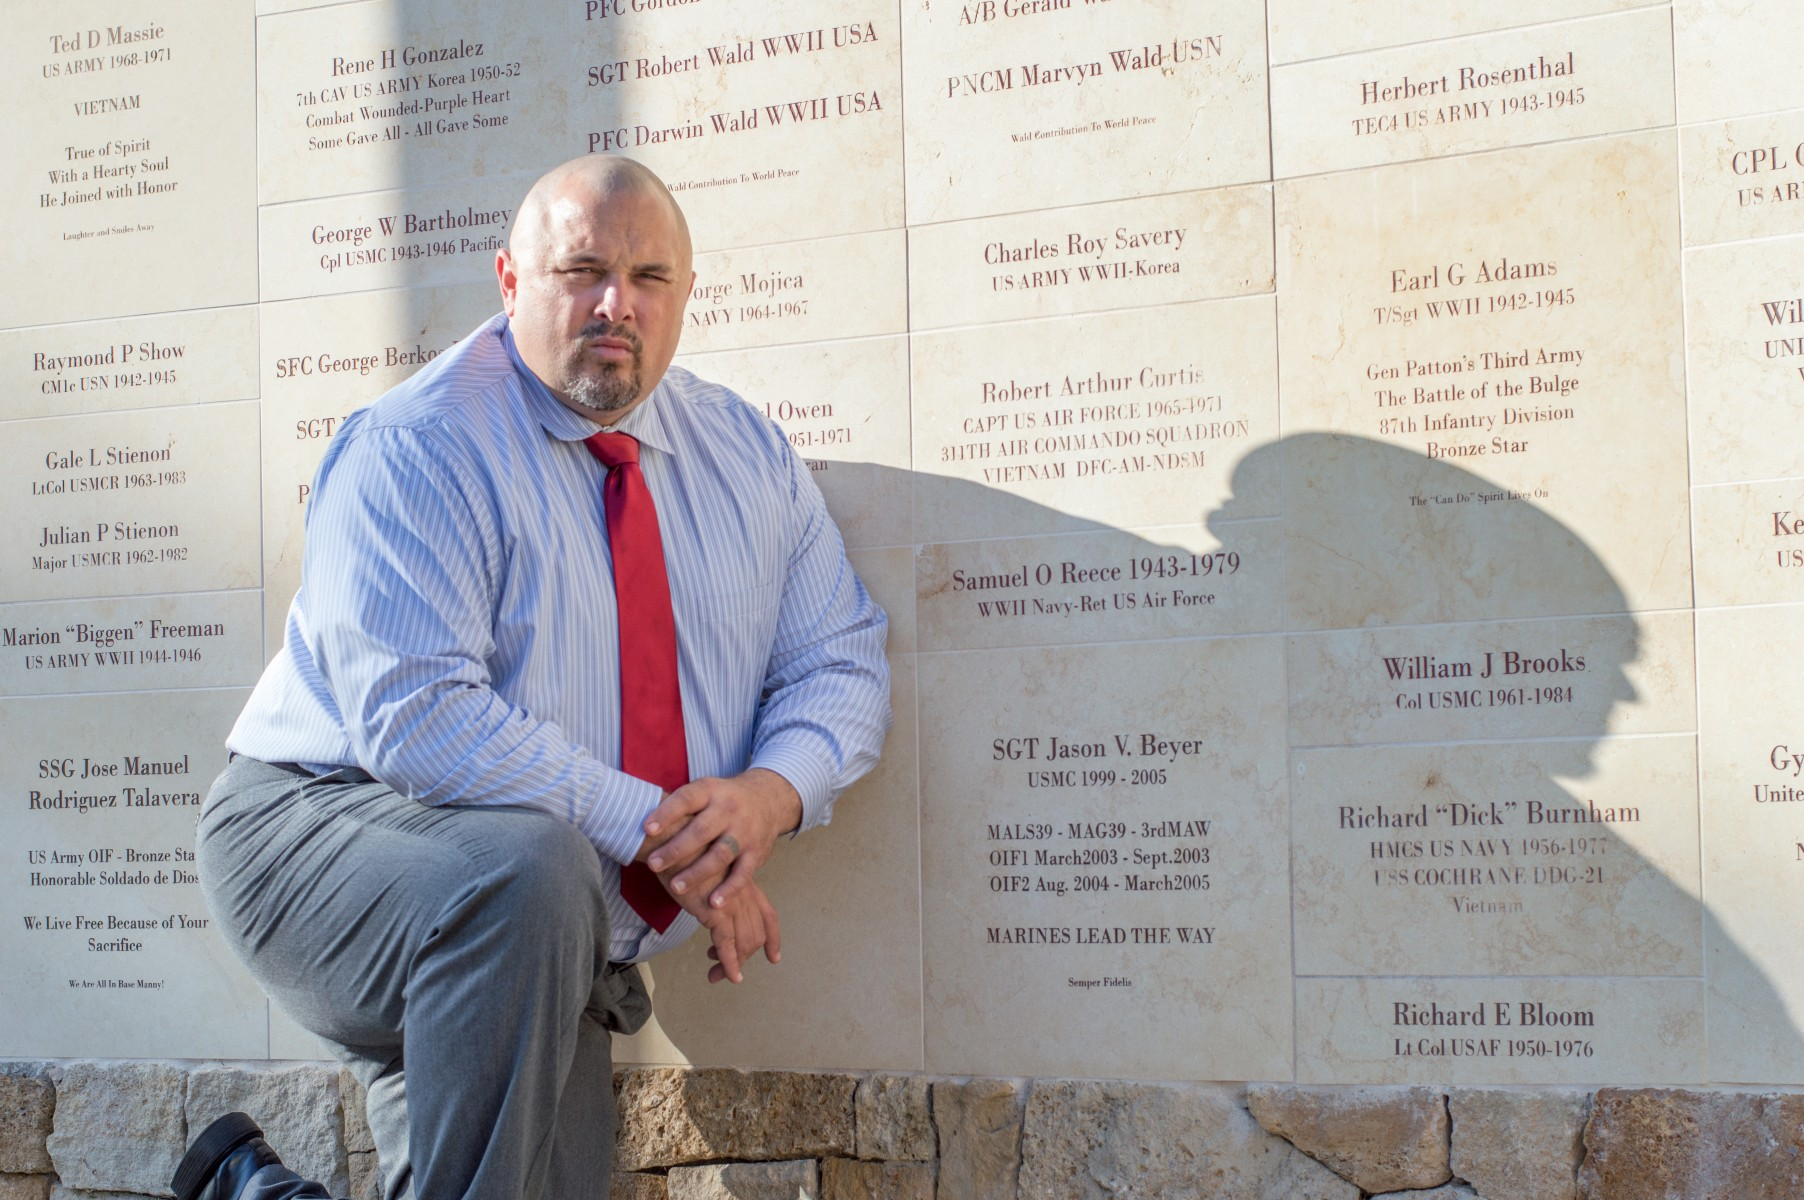 Jason Beyer is a CSUSM business student and Marine veteran who's leading an initiative to expand the memorial wall at Helen Bougher Memorial Park in San Marcos. Photo by Angelica Pena